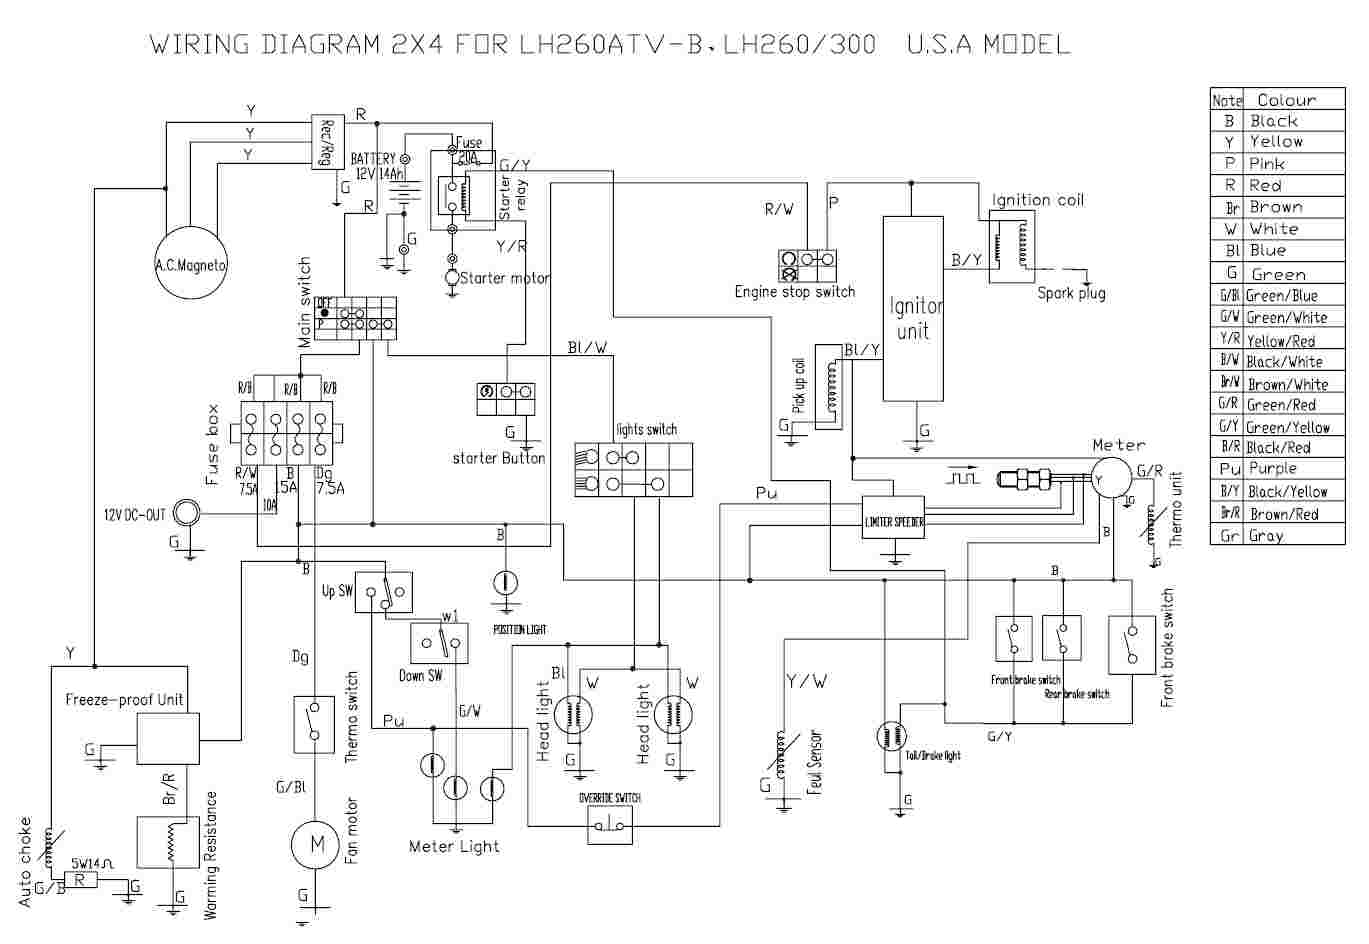 Atm50 49cc Scooter Wiring Diagram moreover 8 Pole Oblique Three Hole Mag o 402517622 moreover 4 Wire Ignition Switch Diagram Atv furthermore 6 Wire Cdi Wiring Diagram additionally Repair And Service Manuals. on chinese atv cdi diagram